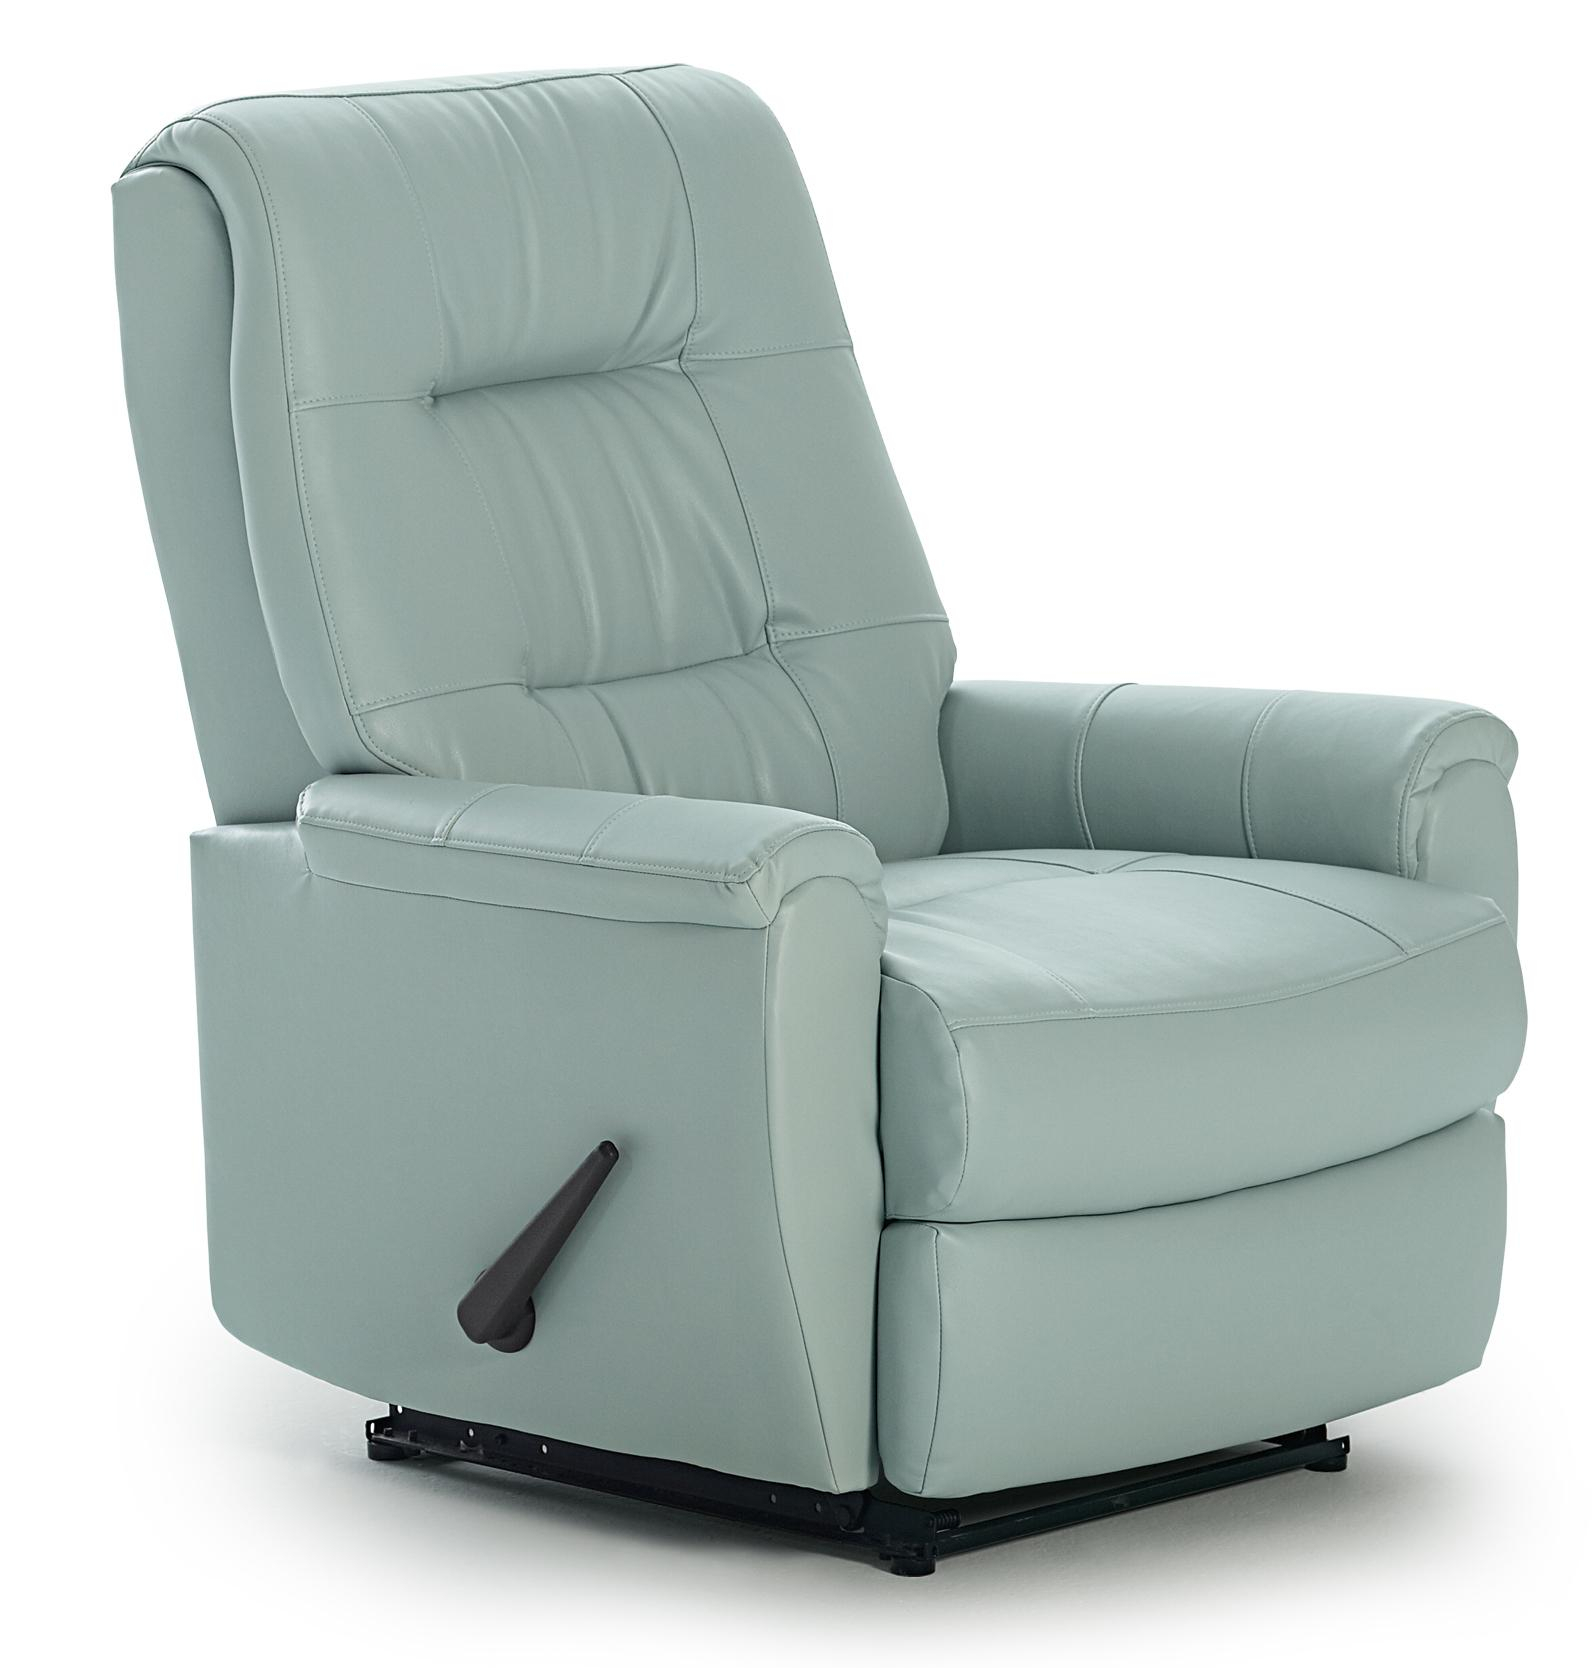 Leather Swivel Rocker Recliner And Its Benefits | Inside Decker Ii Fabric Swivel Glider Recliners (Image 15 of 20)